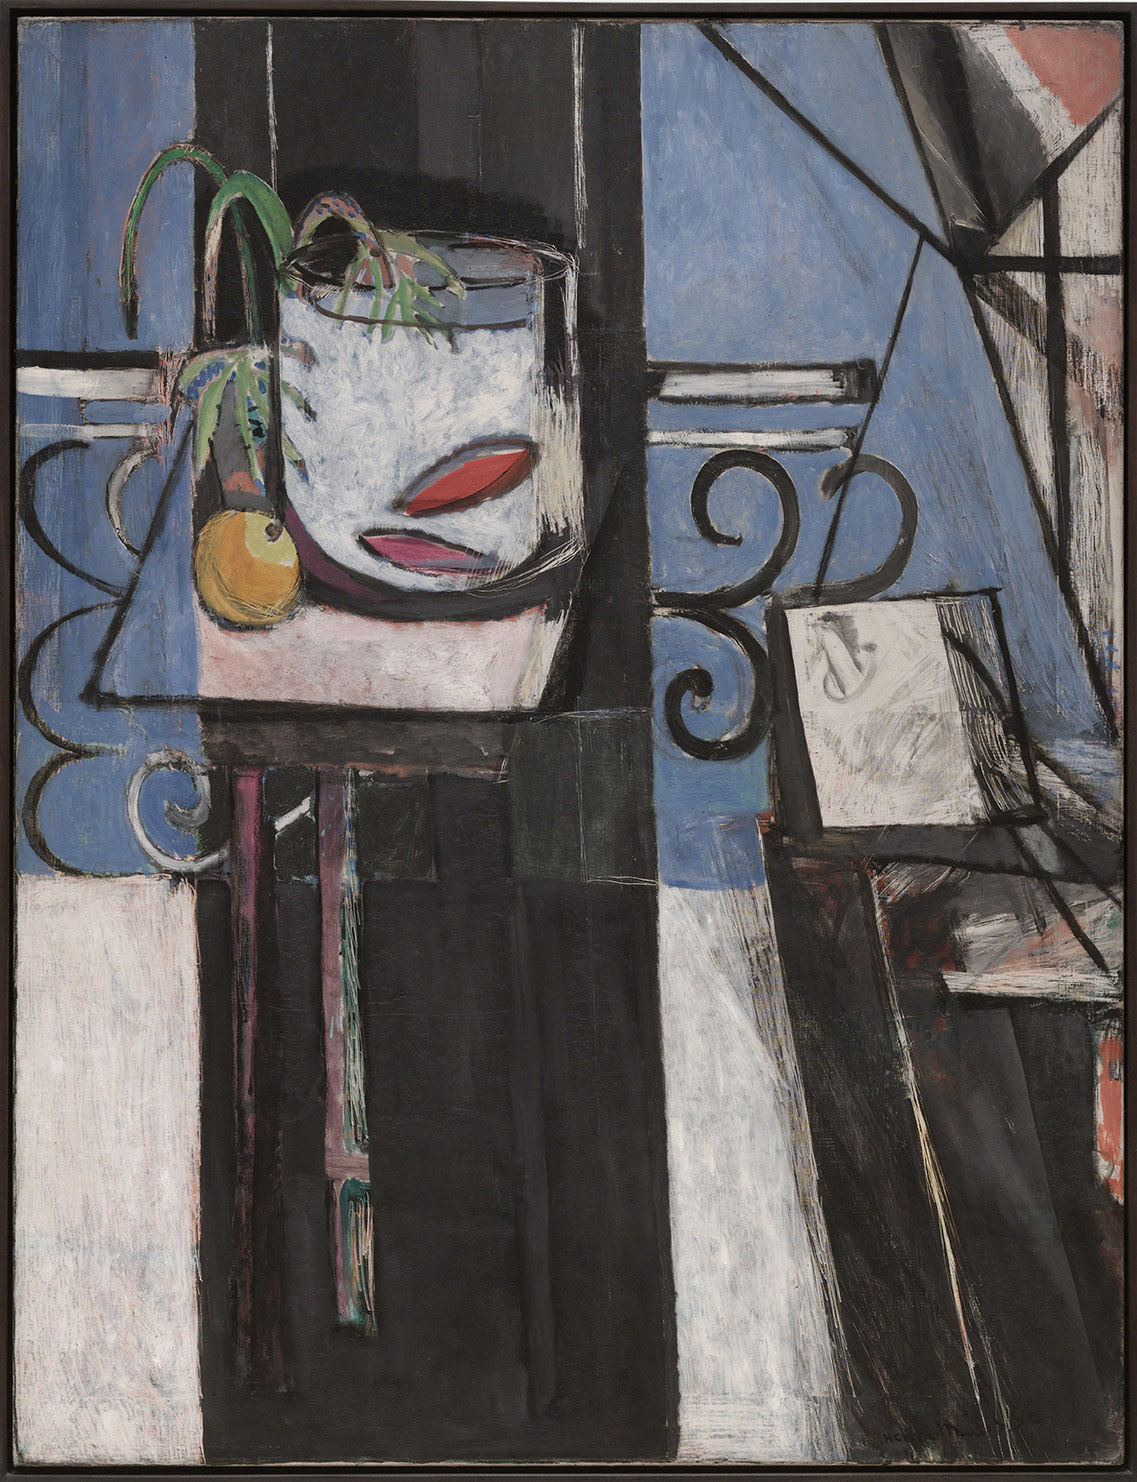 Goldfish and Palette / Matisse